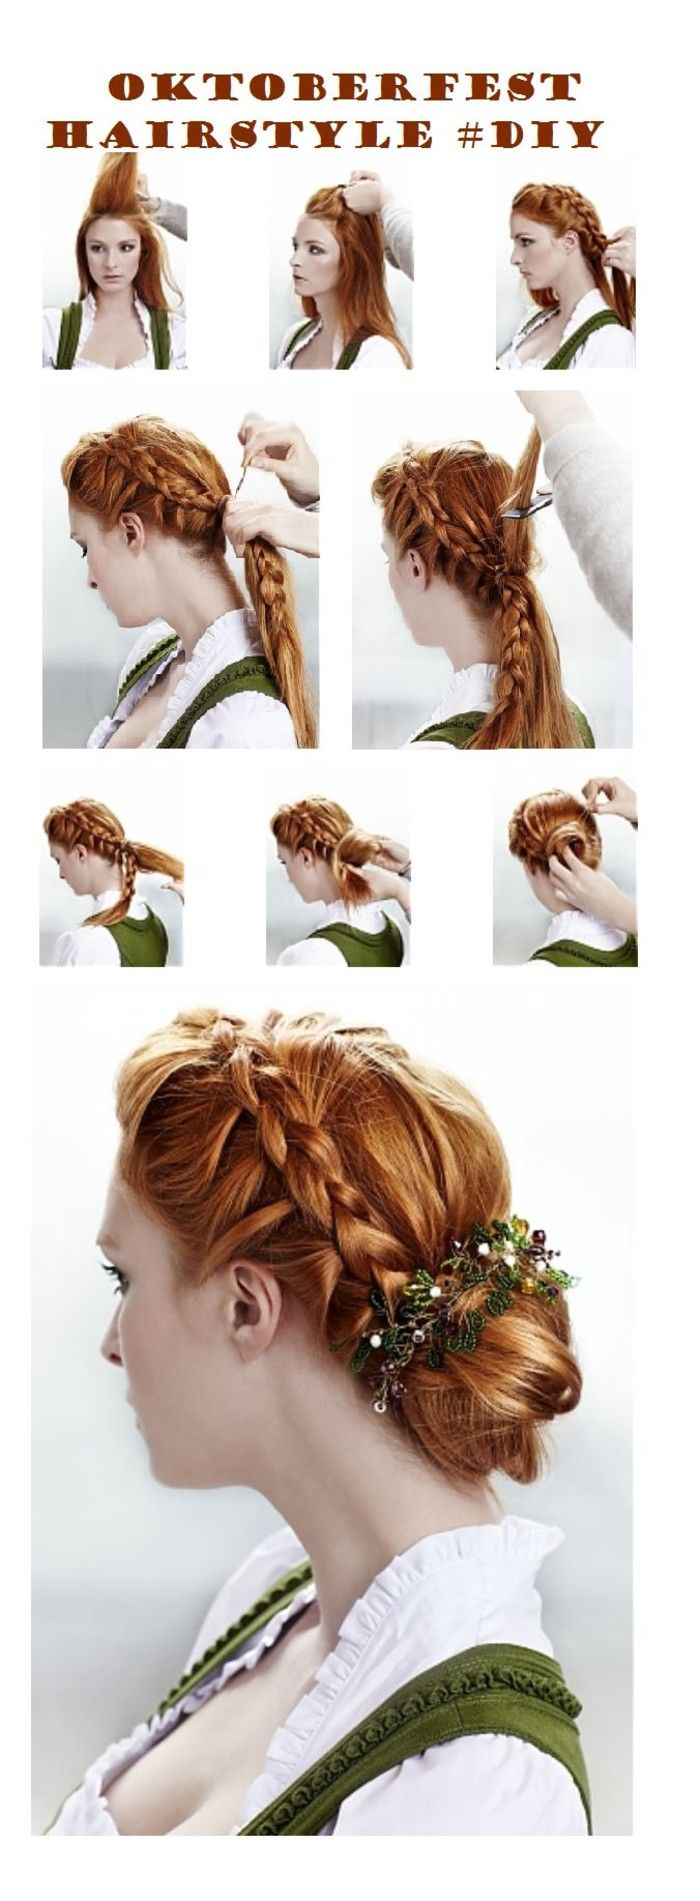 Oktoberfest Traditional-Inspired Hairstyle DIY